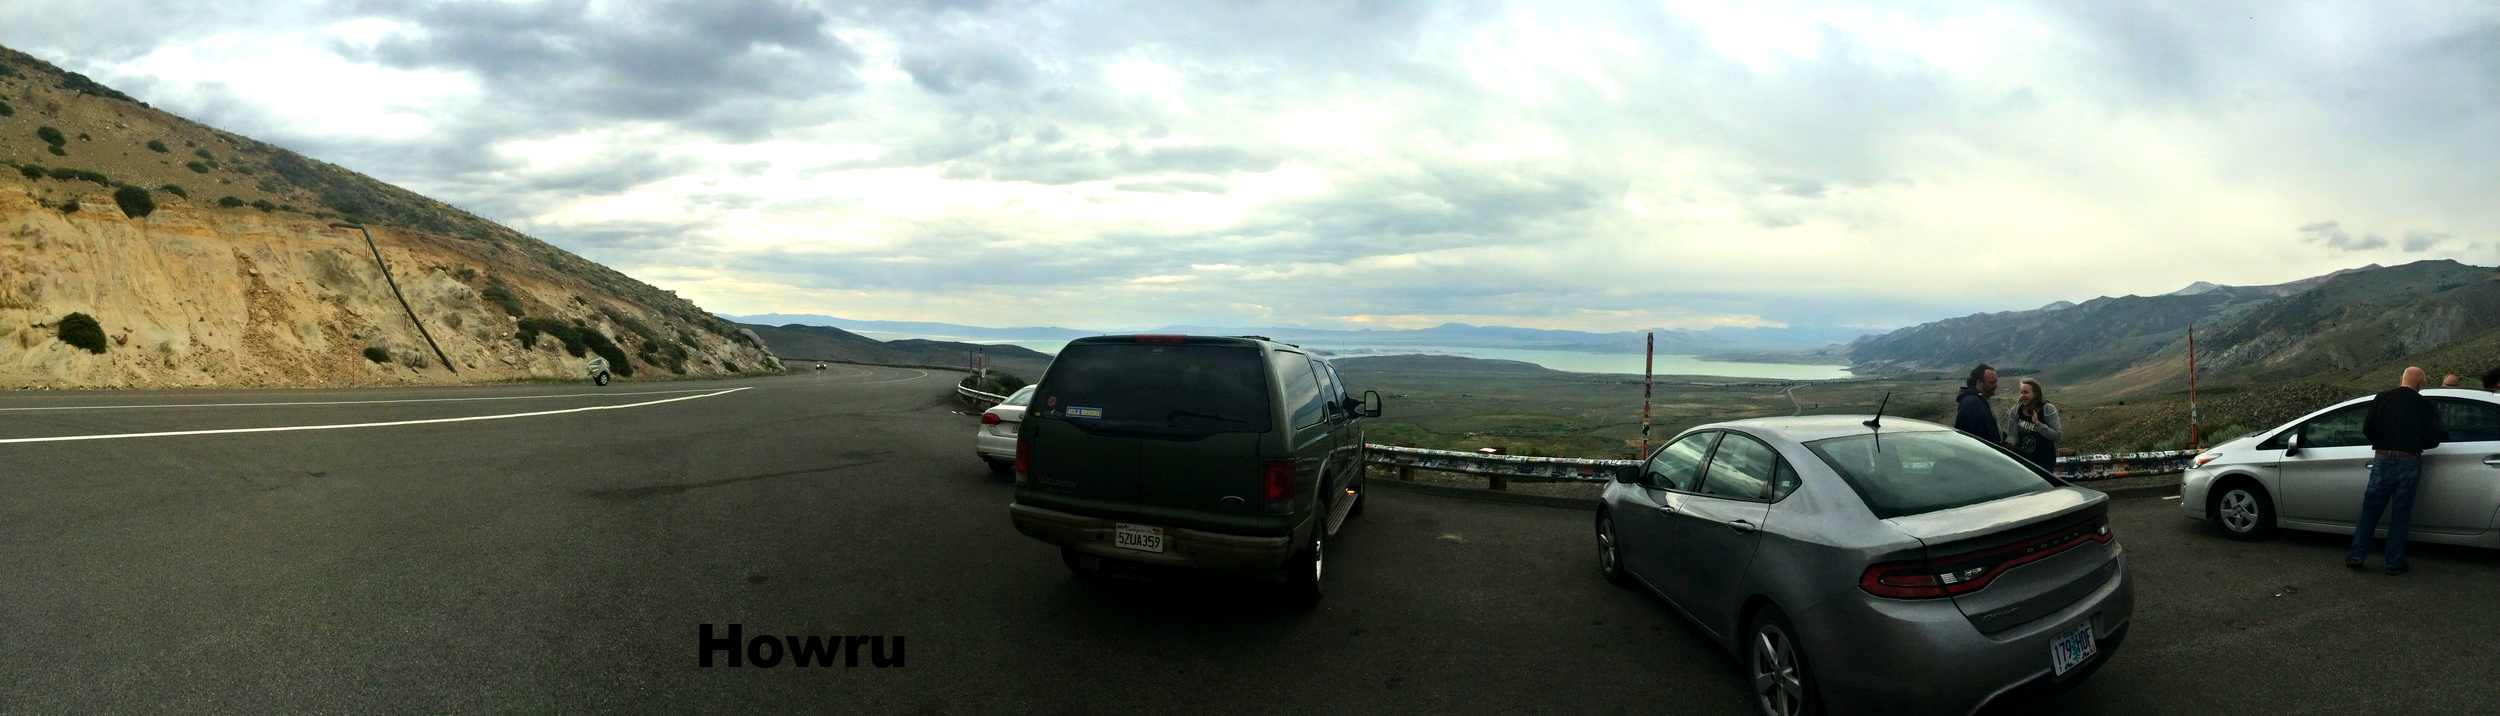 Headed south on the 395 from Tahoe.